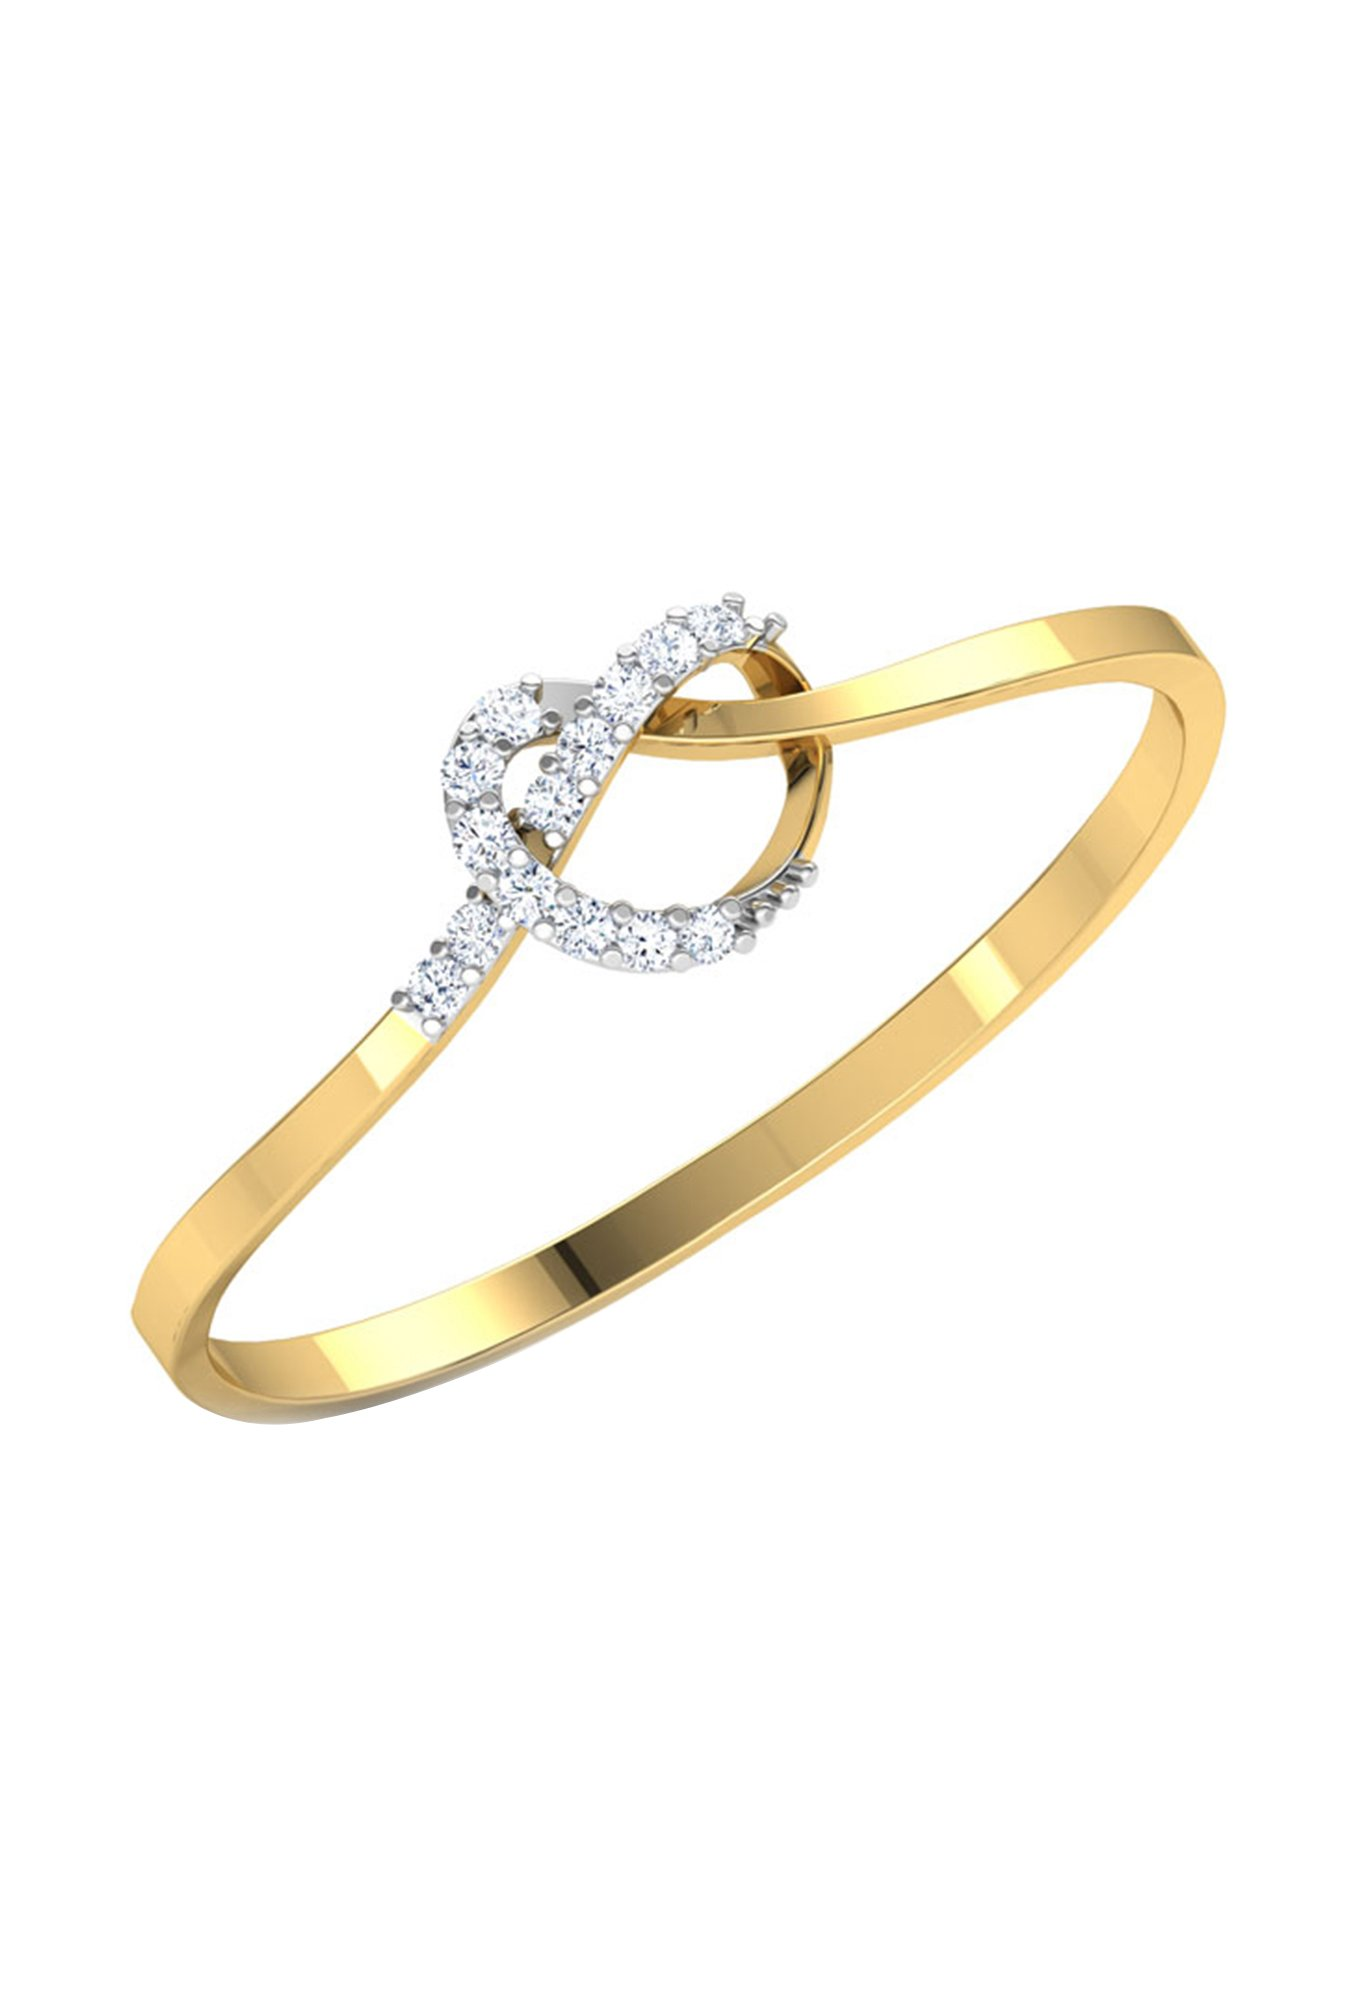 diamond ringscollection and gold white knot rings details ori celtic ring engagement